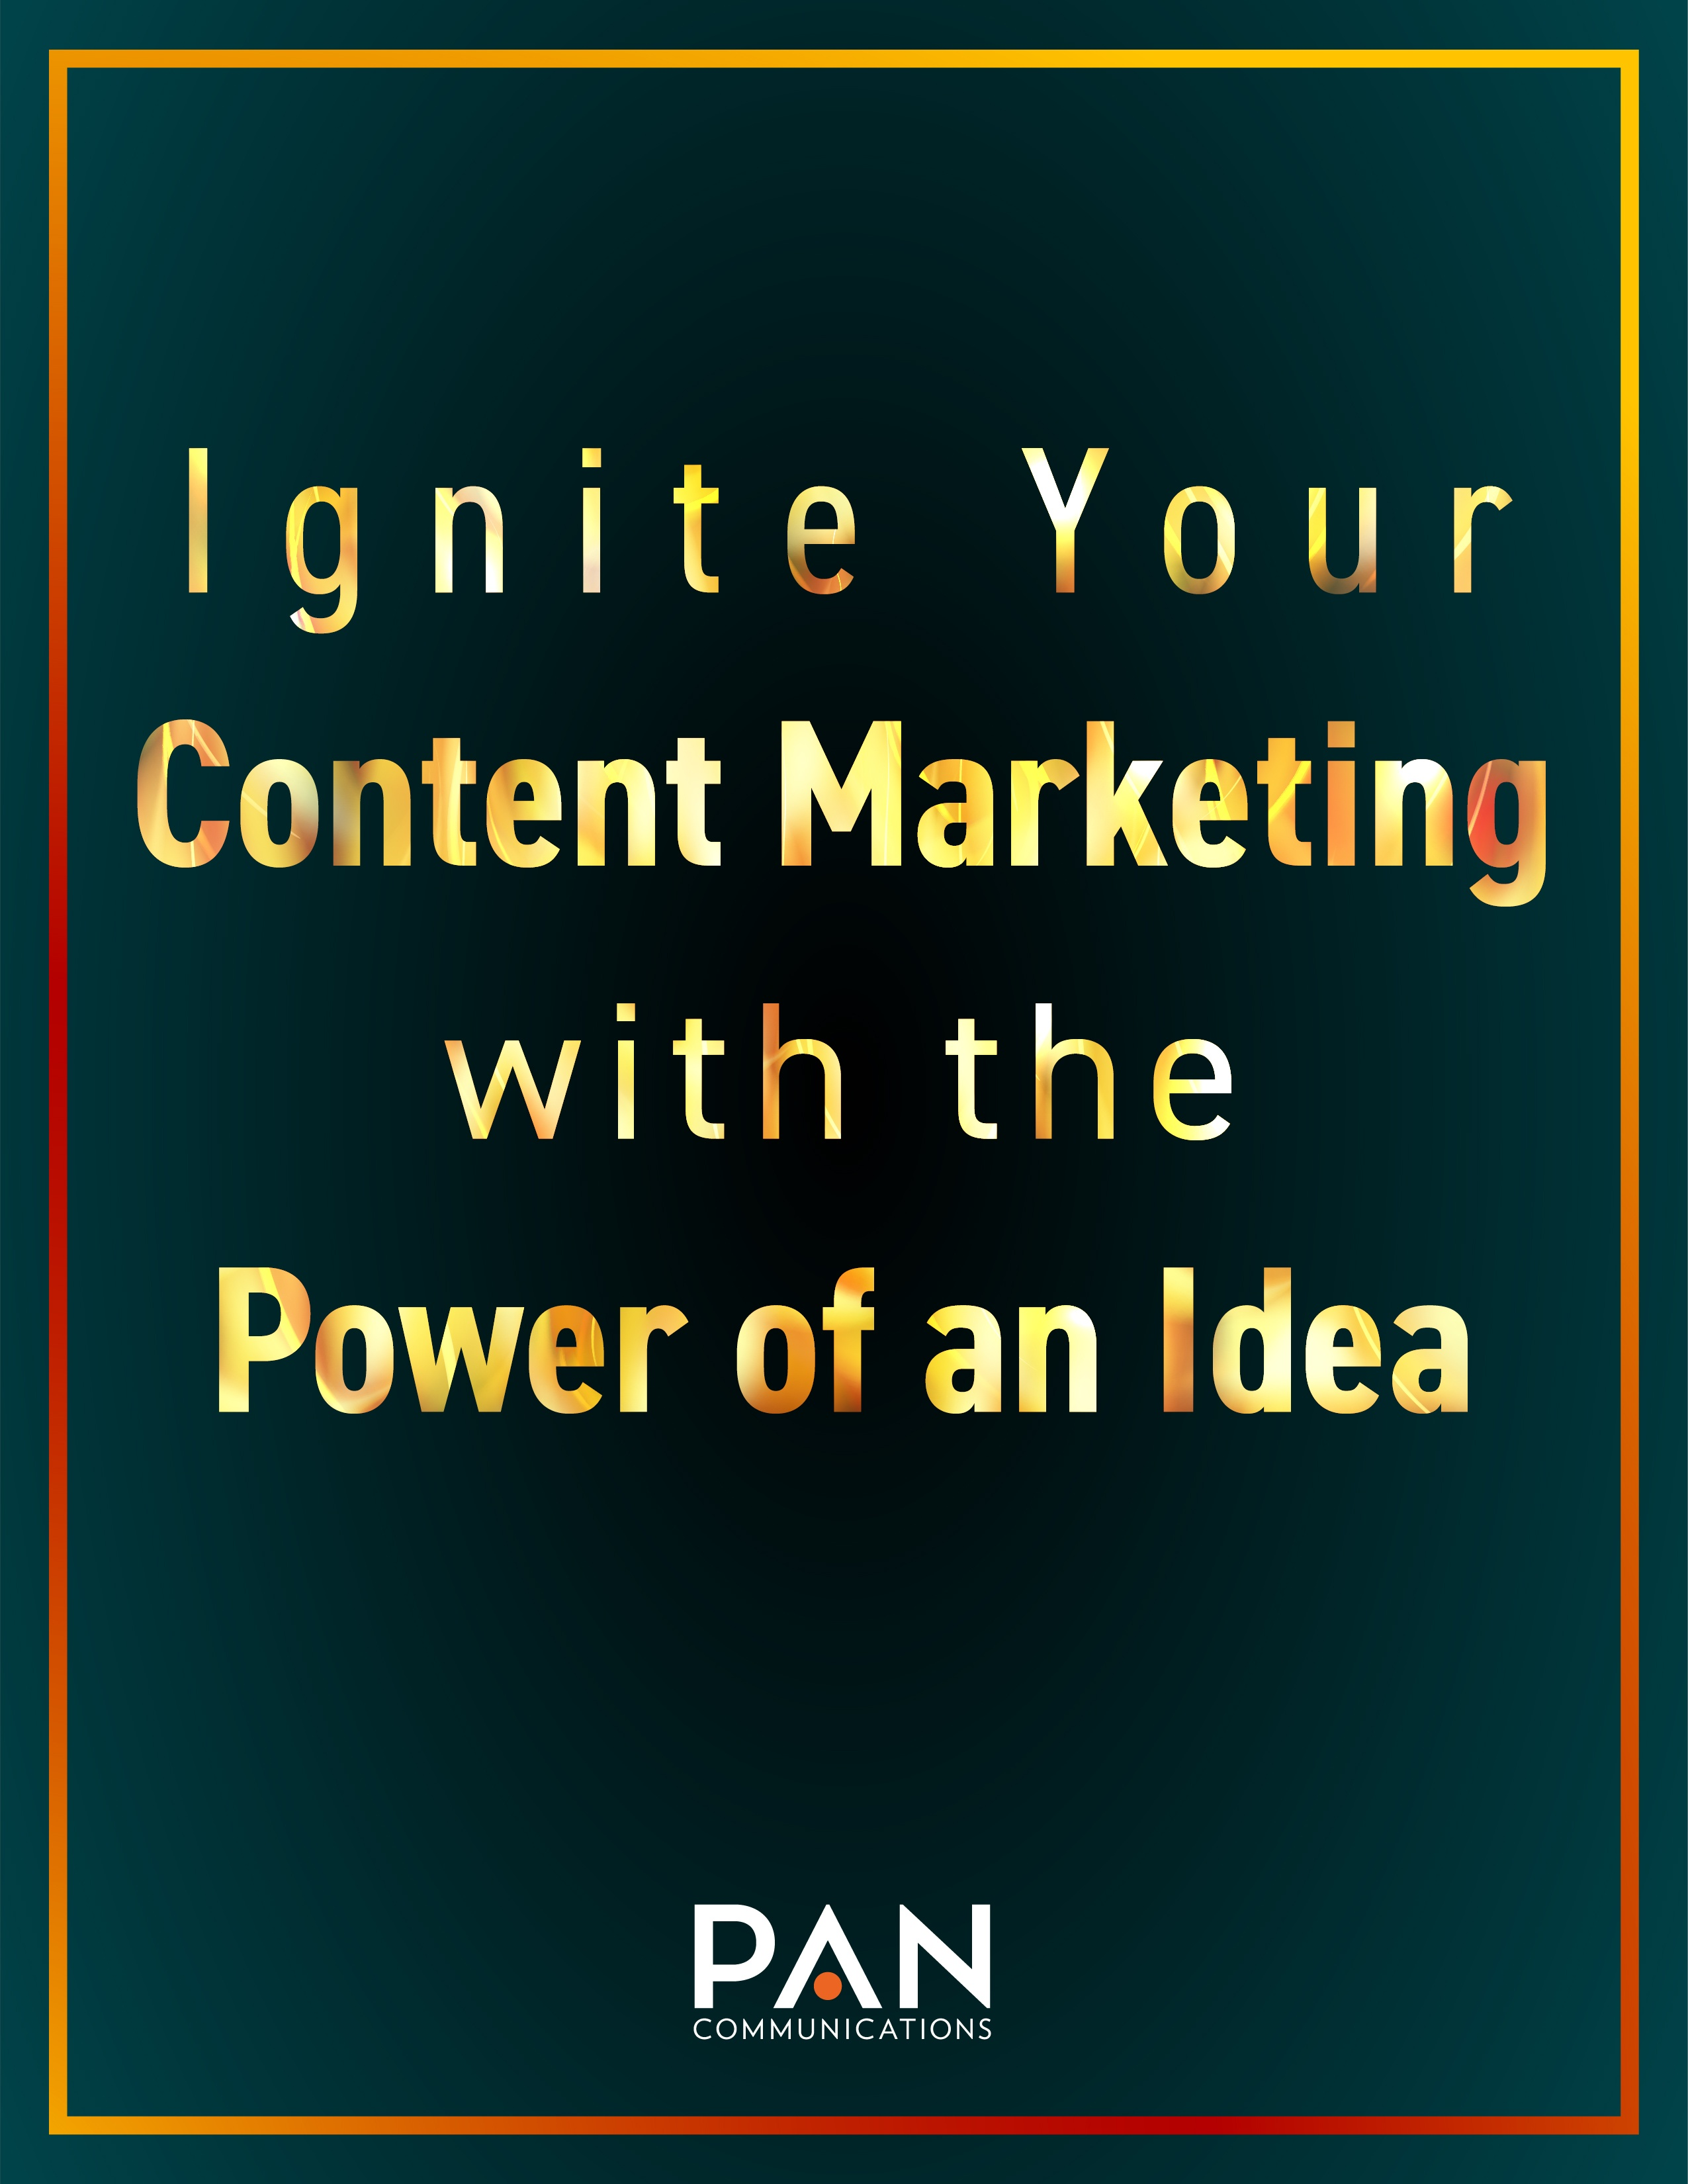 Ignite Your Content Marketing with the Power of an Idea